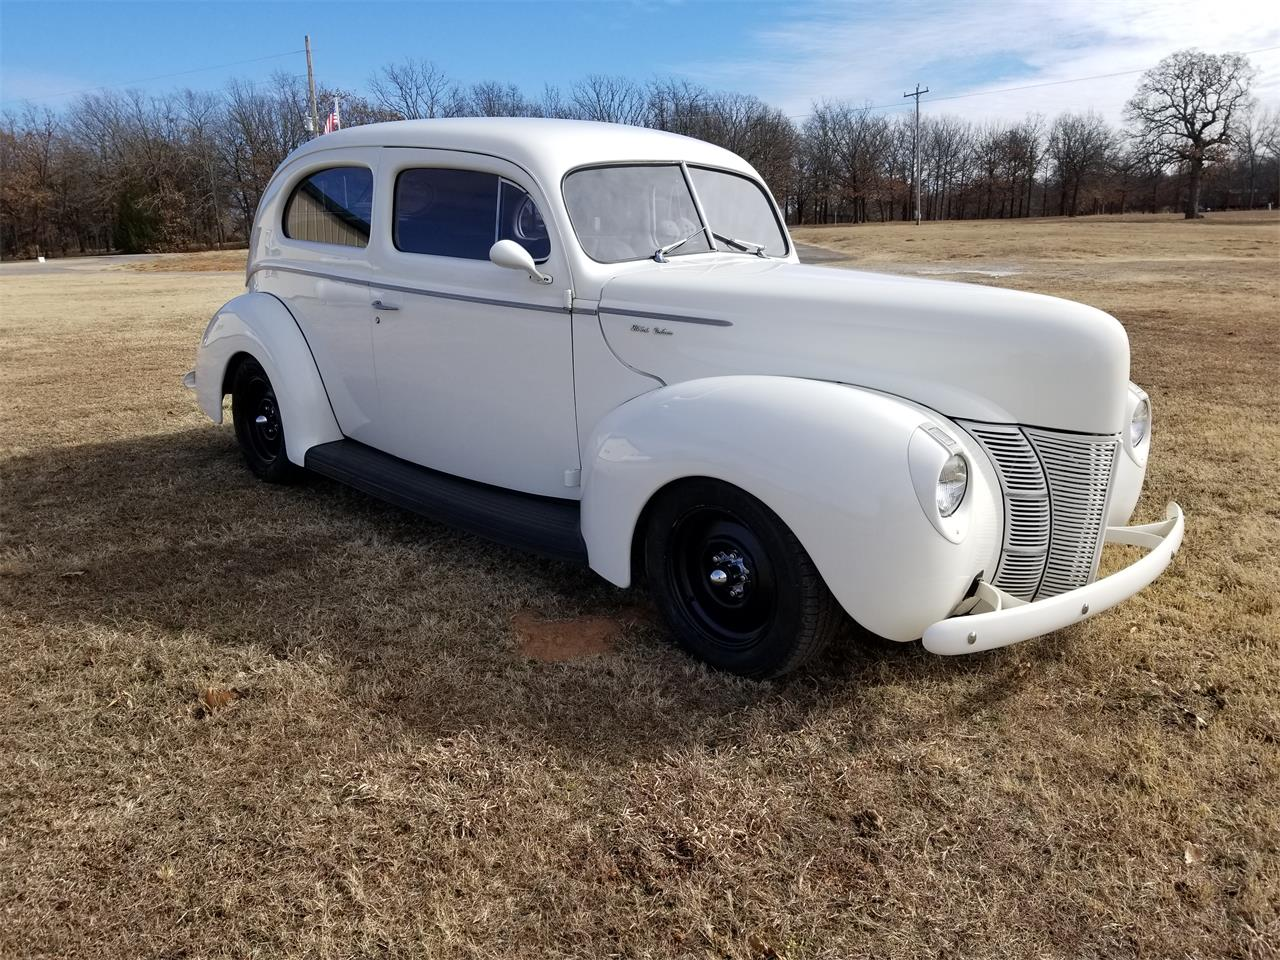 Large Picture of Classic 1940 Ford Deluxe located in Oklahoma - $29,500.00 Offered by a Private Seller - HO65